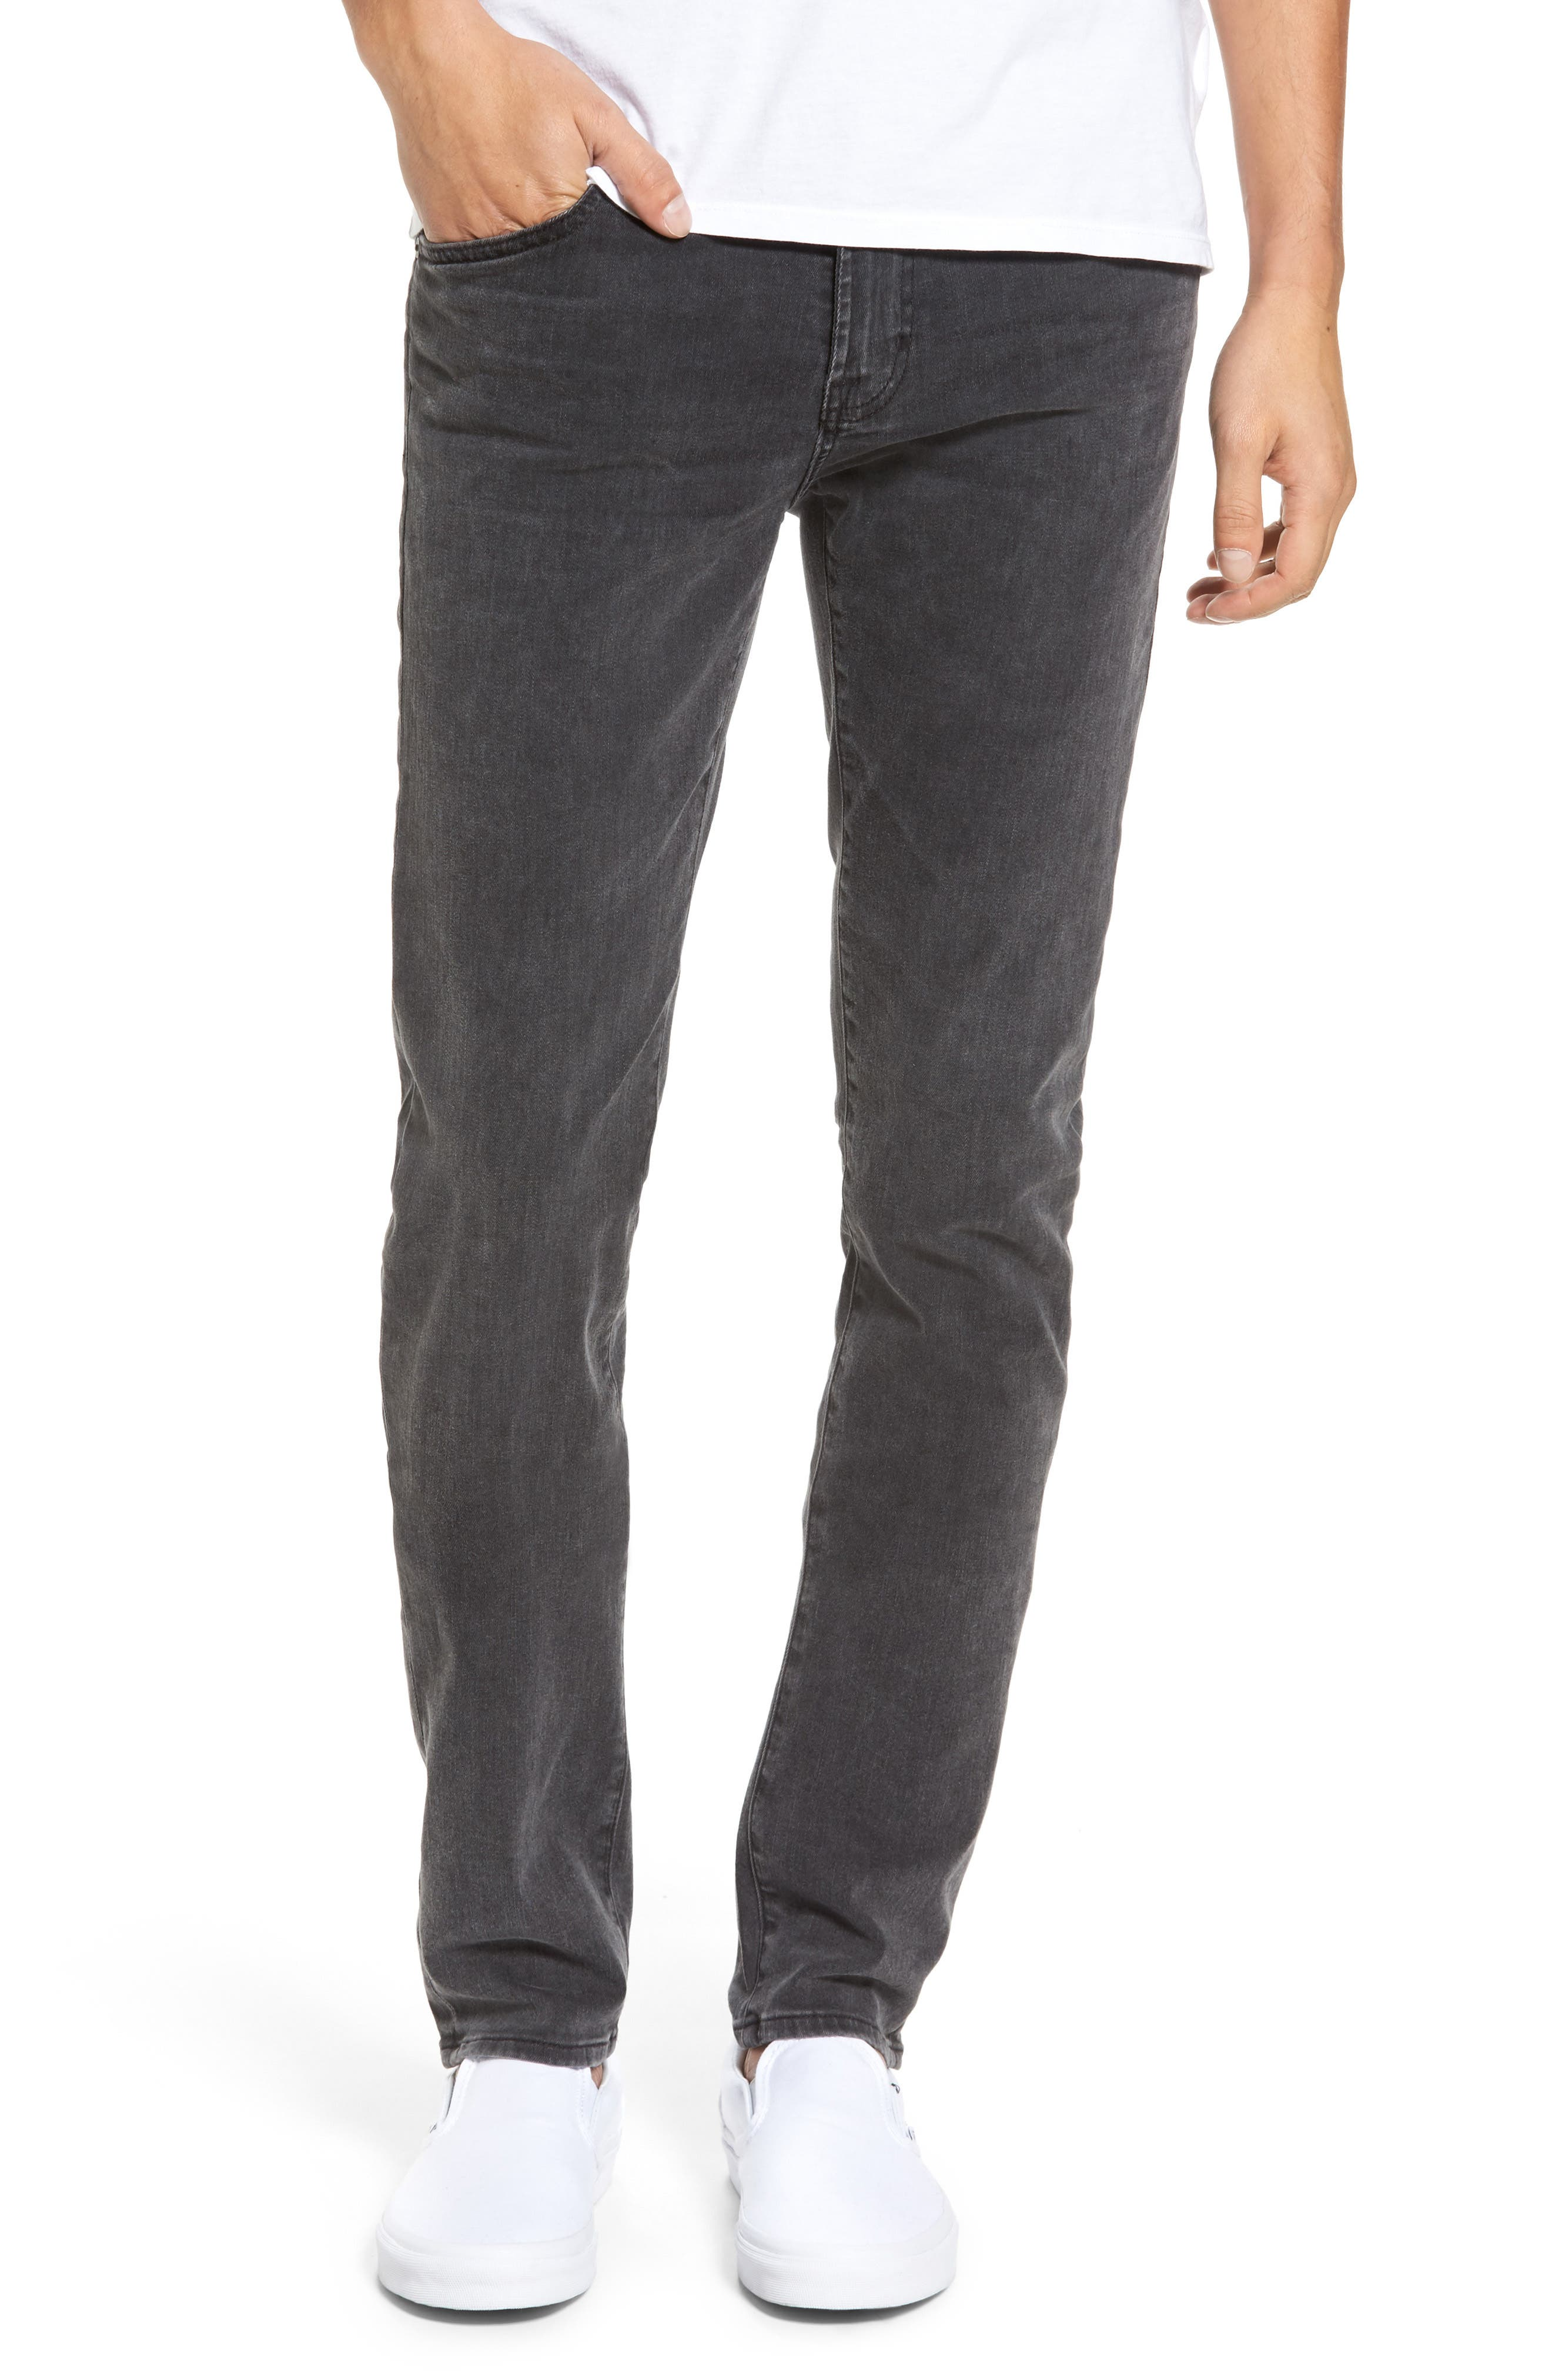 Stockton Skinny Fit Jeans,                             Main thumbnail 1, color,                             10 Years Black Dunes